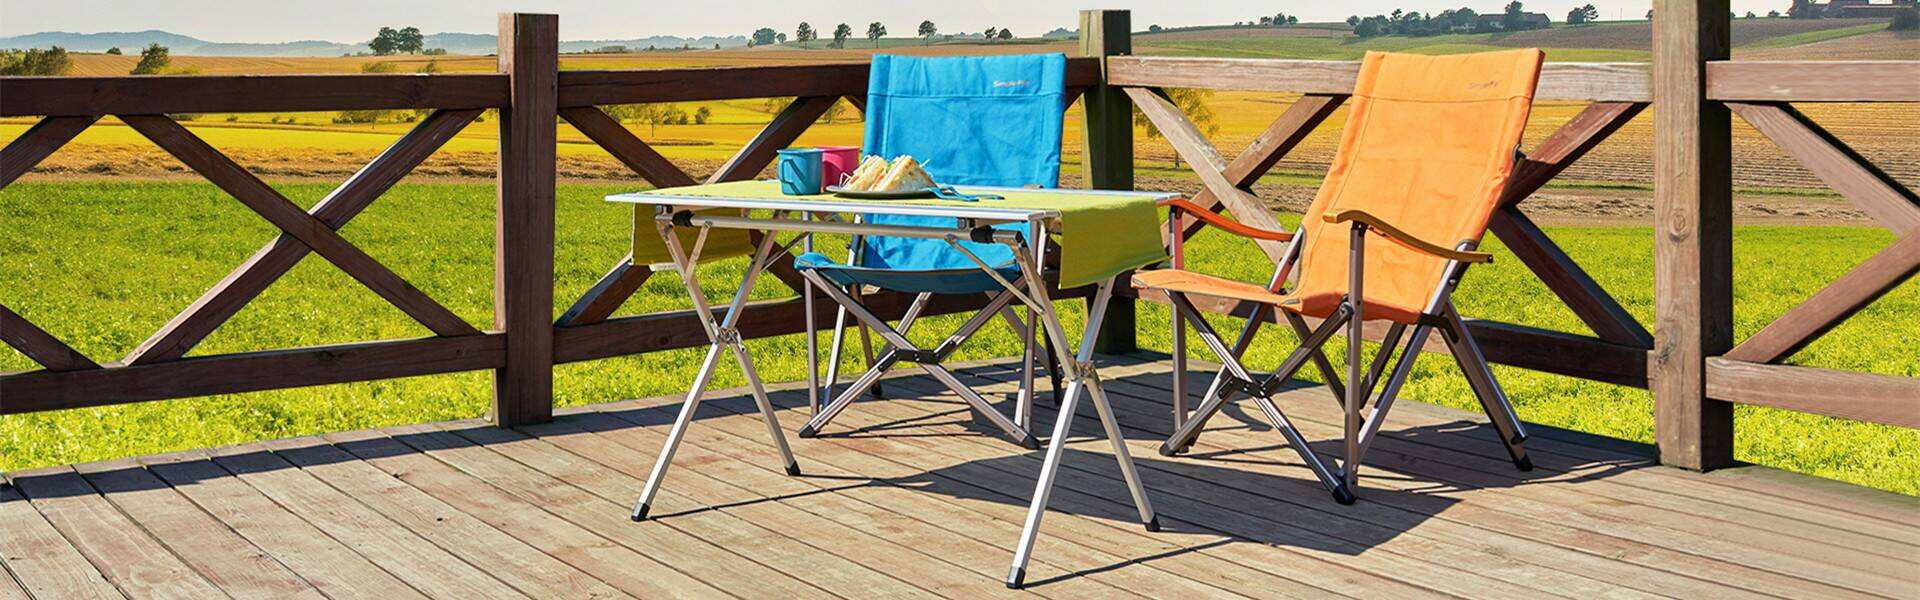 Best Camping Chair Supplier